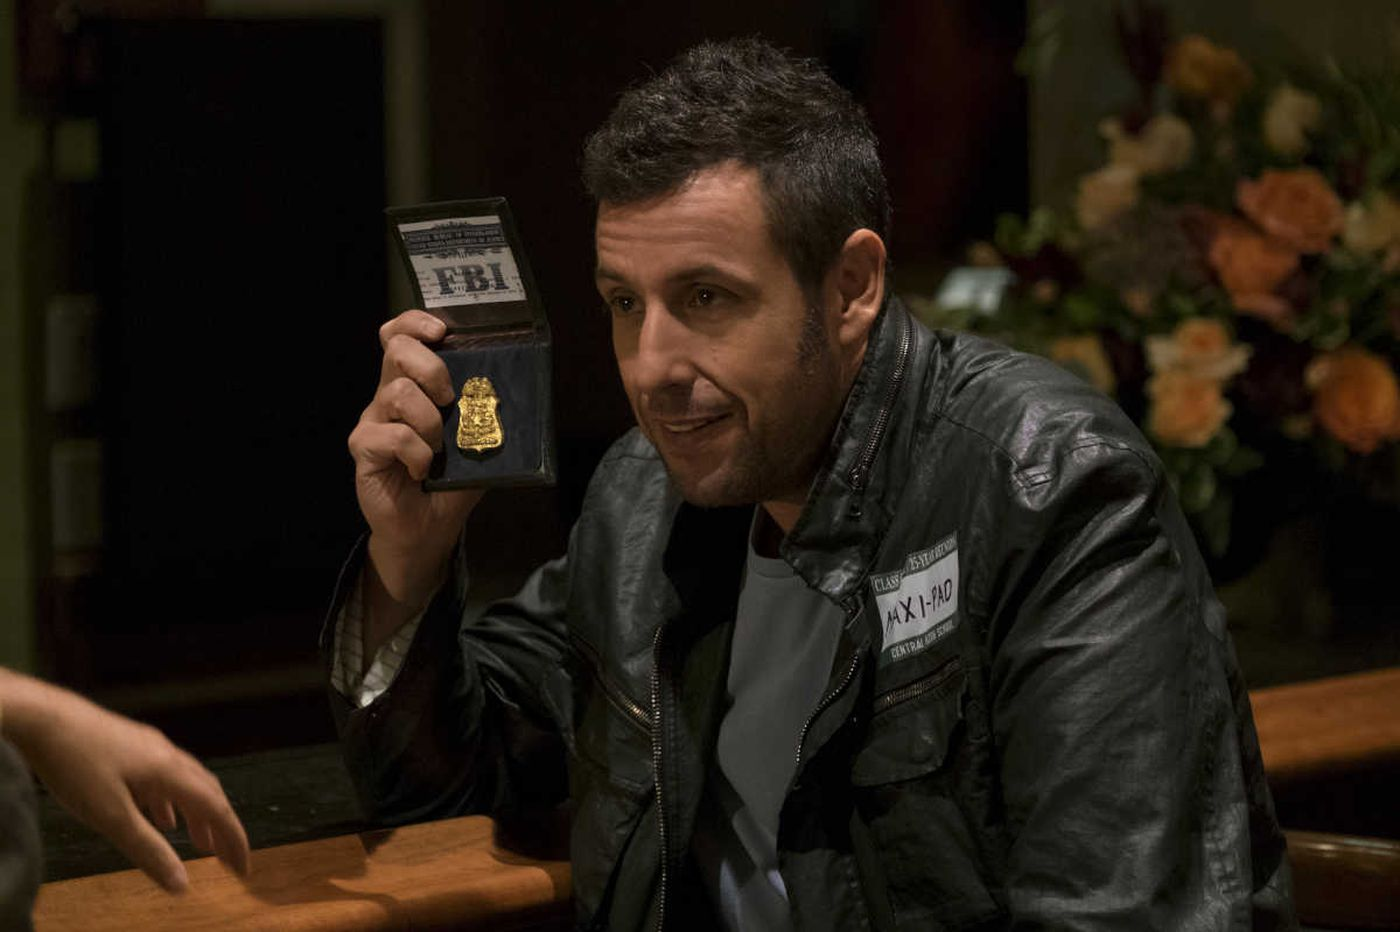 Adam Sandler's doing stand up in Upper Darby and 18 other things to do this weekend, Dec. 9-11